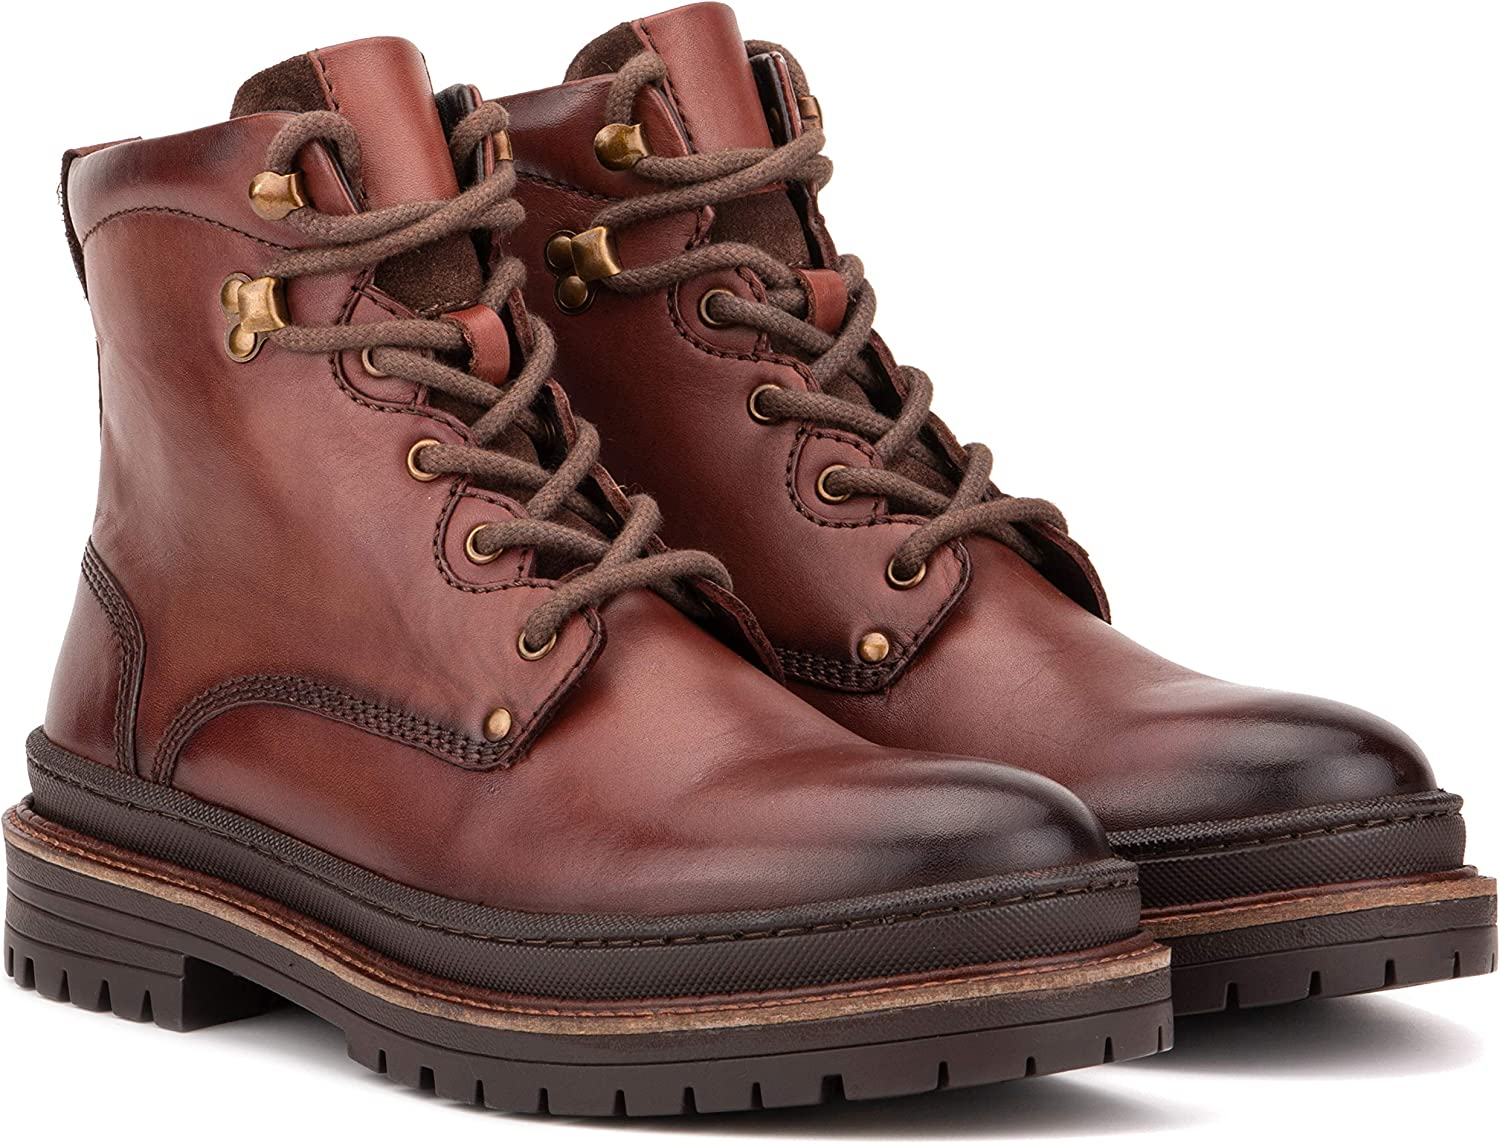 Vintage Foundry Co. Washington Mall Orian Men's Handcrafted Fashion Our shop OFFers the best service Classic